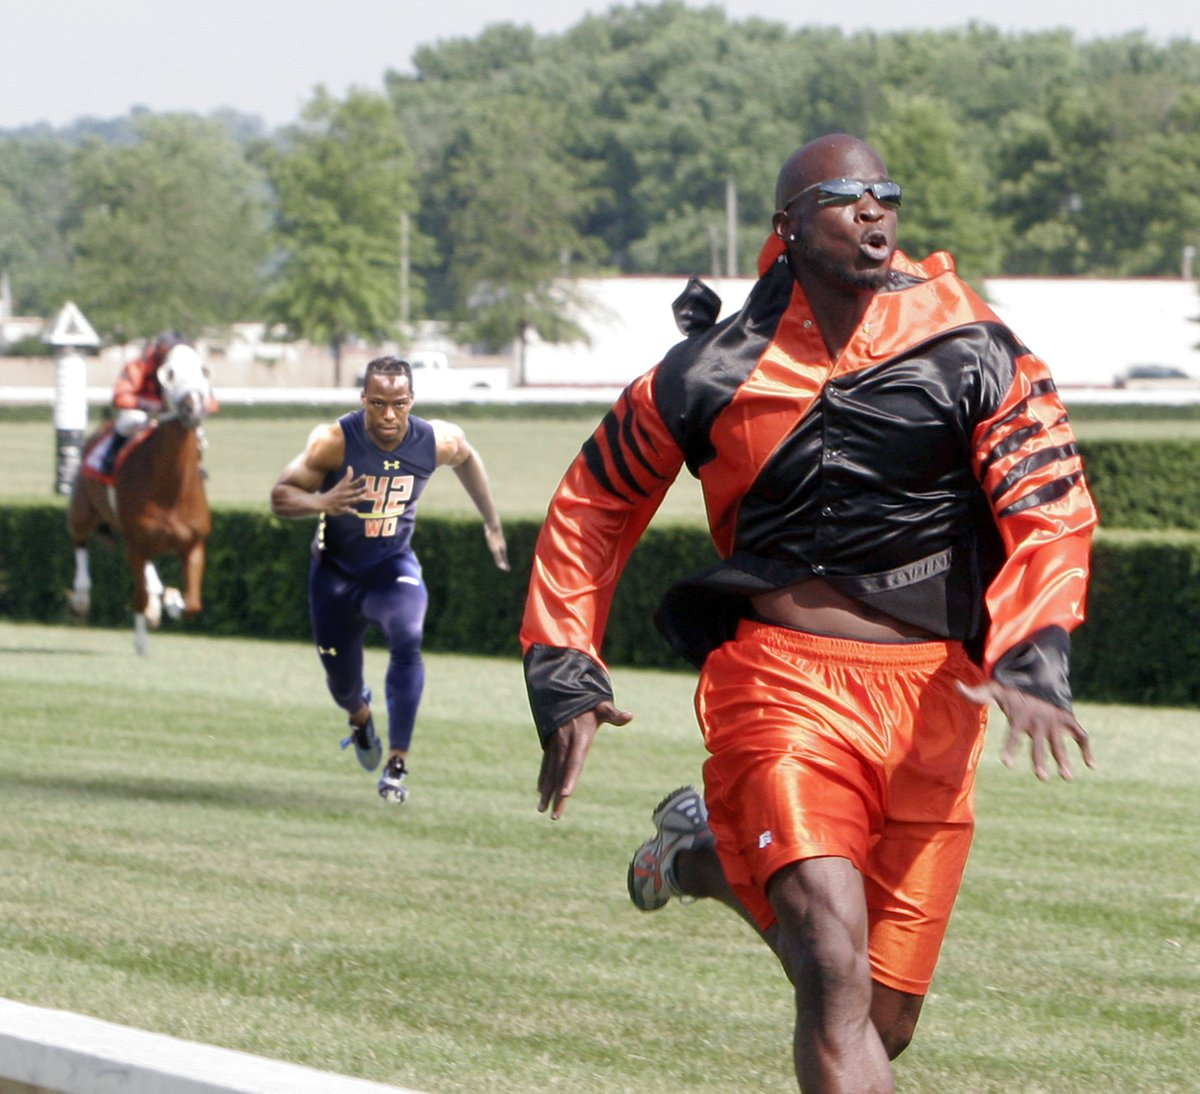 Who would win this race? @ochocinco , @WatchJRoss, or the horse? 🤔🏇  #Bengals #KentuckyDerby #NewDEY  Vote in the replies 👇